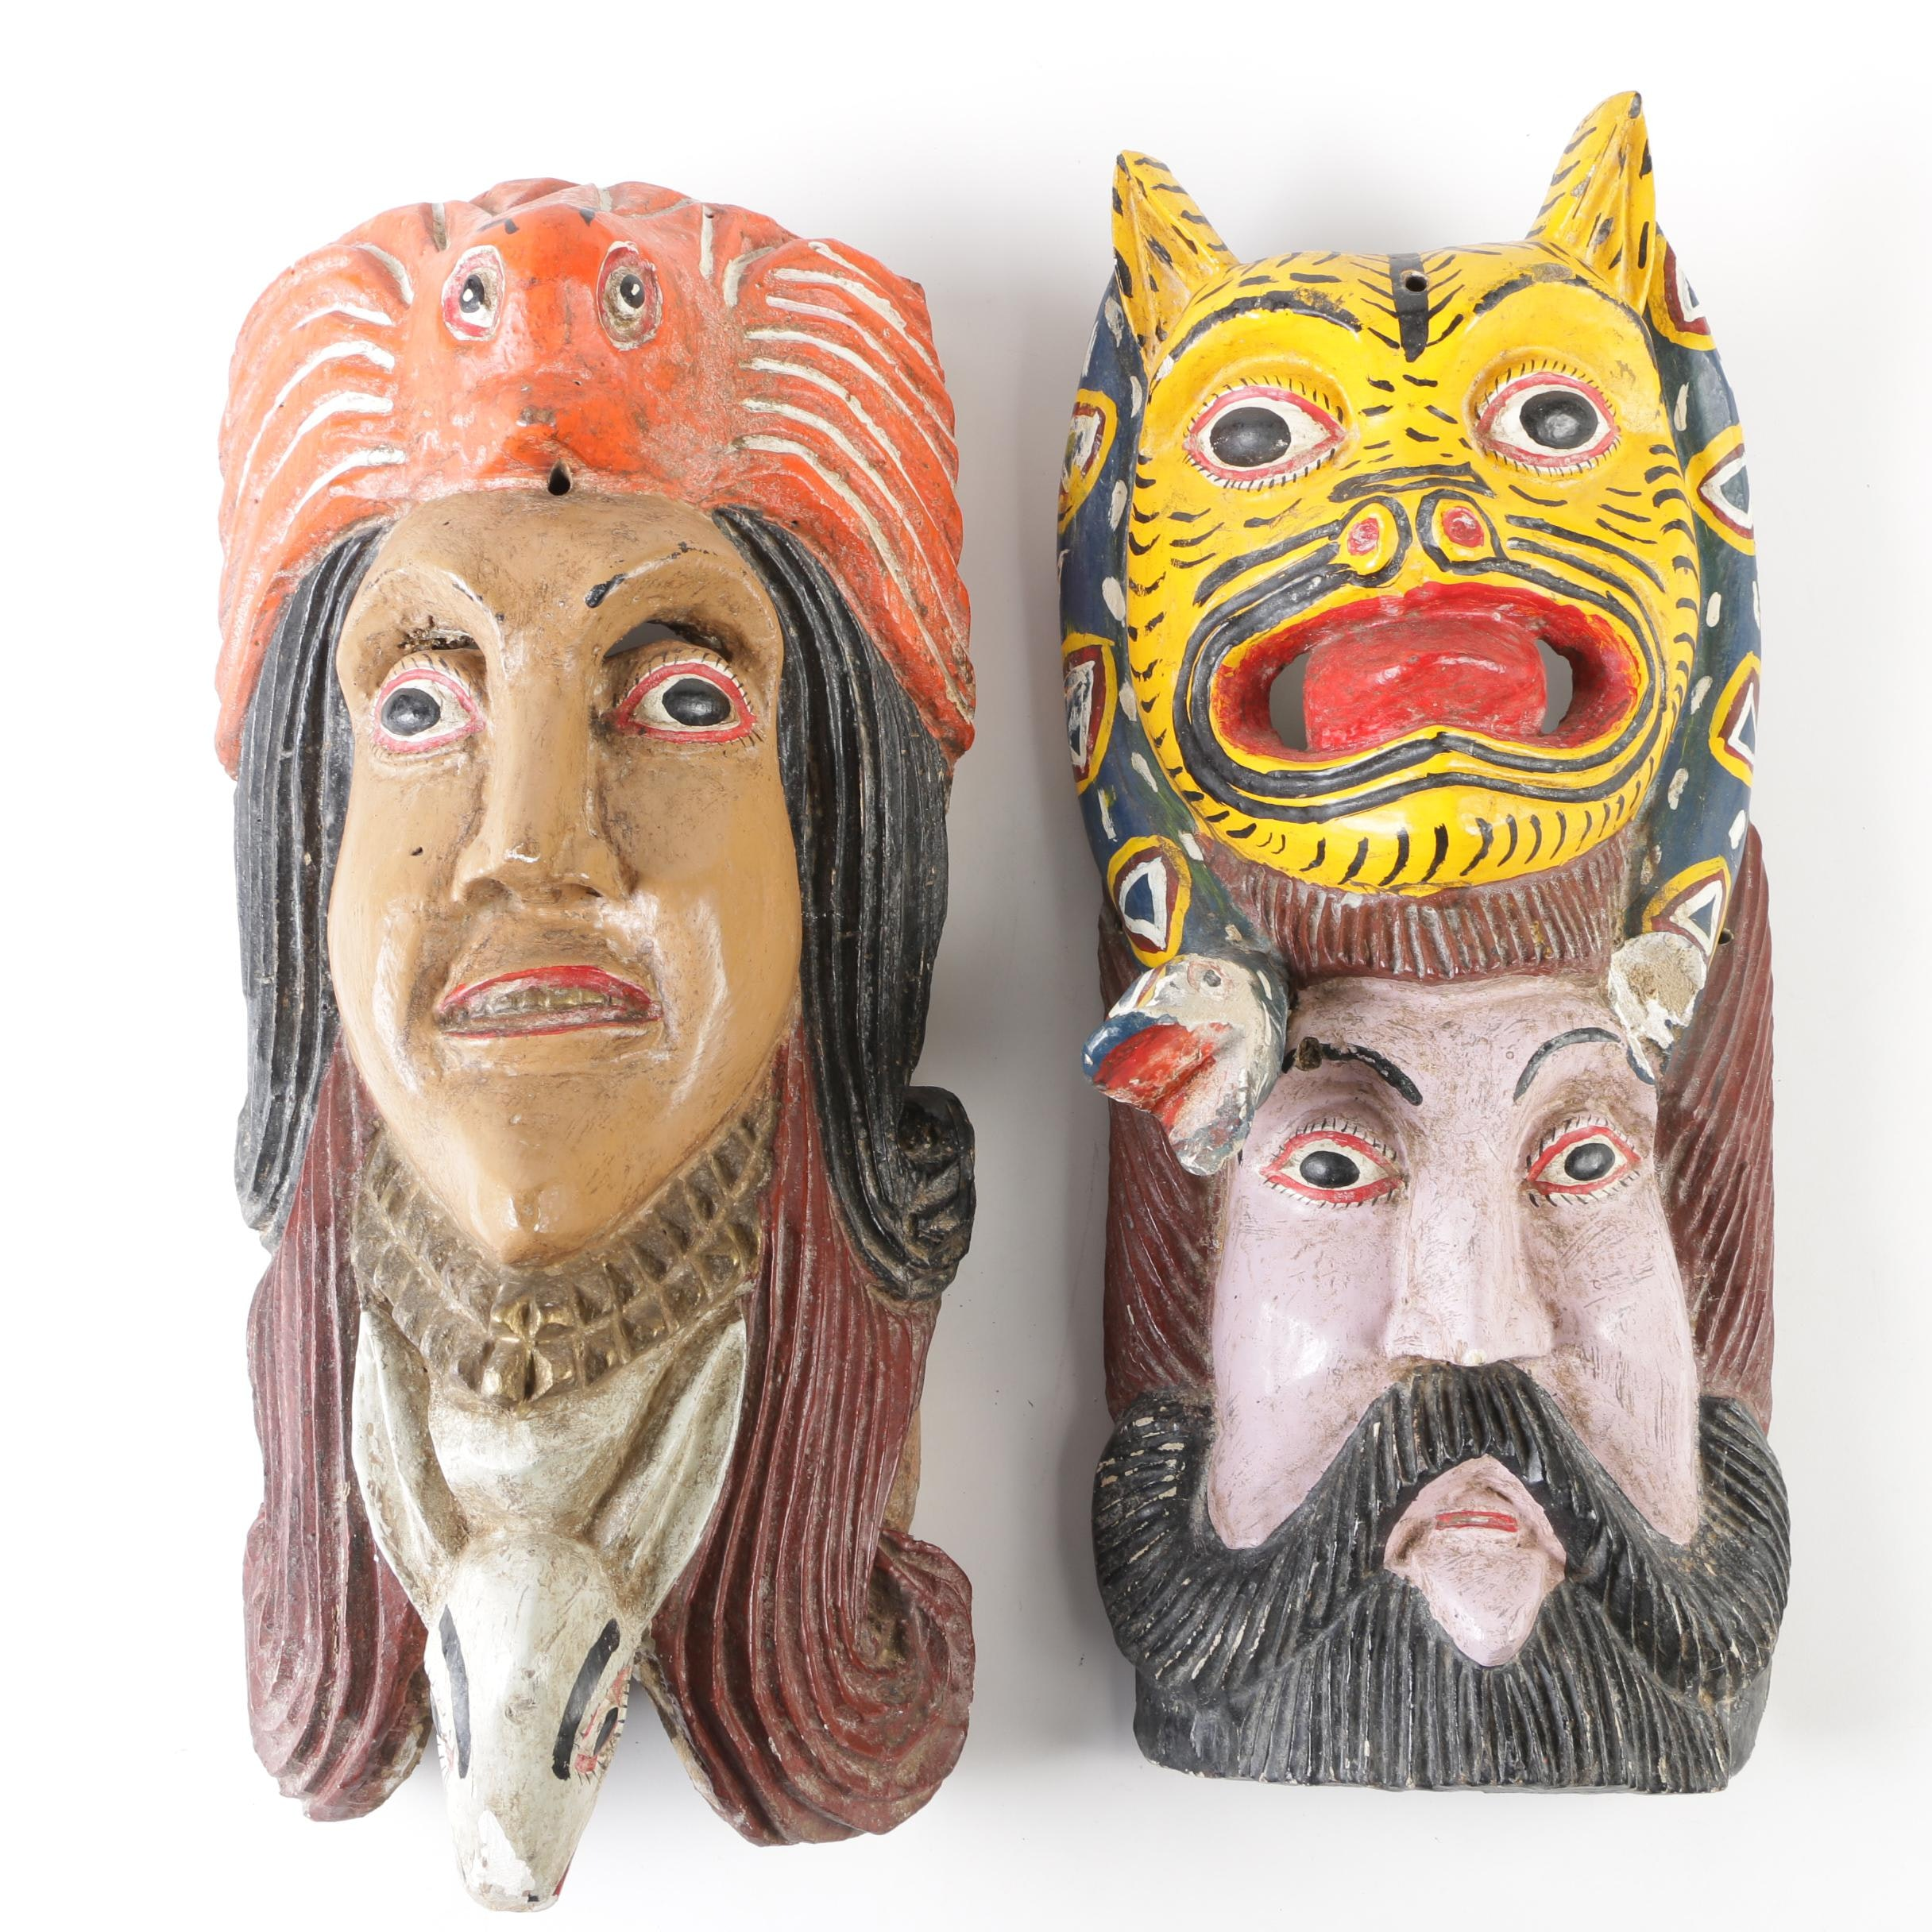 Hand-Painted Mexican-American Style Papier-Mâché Masks with Animal Motifs